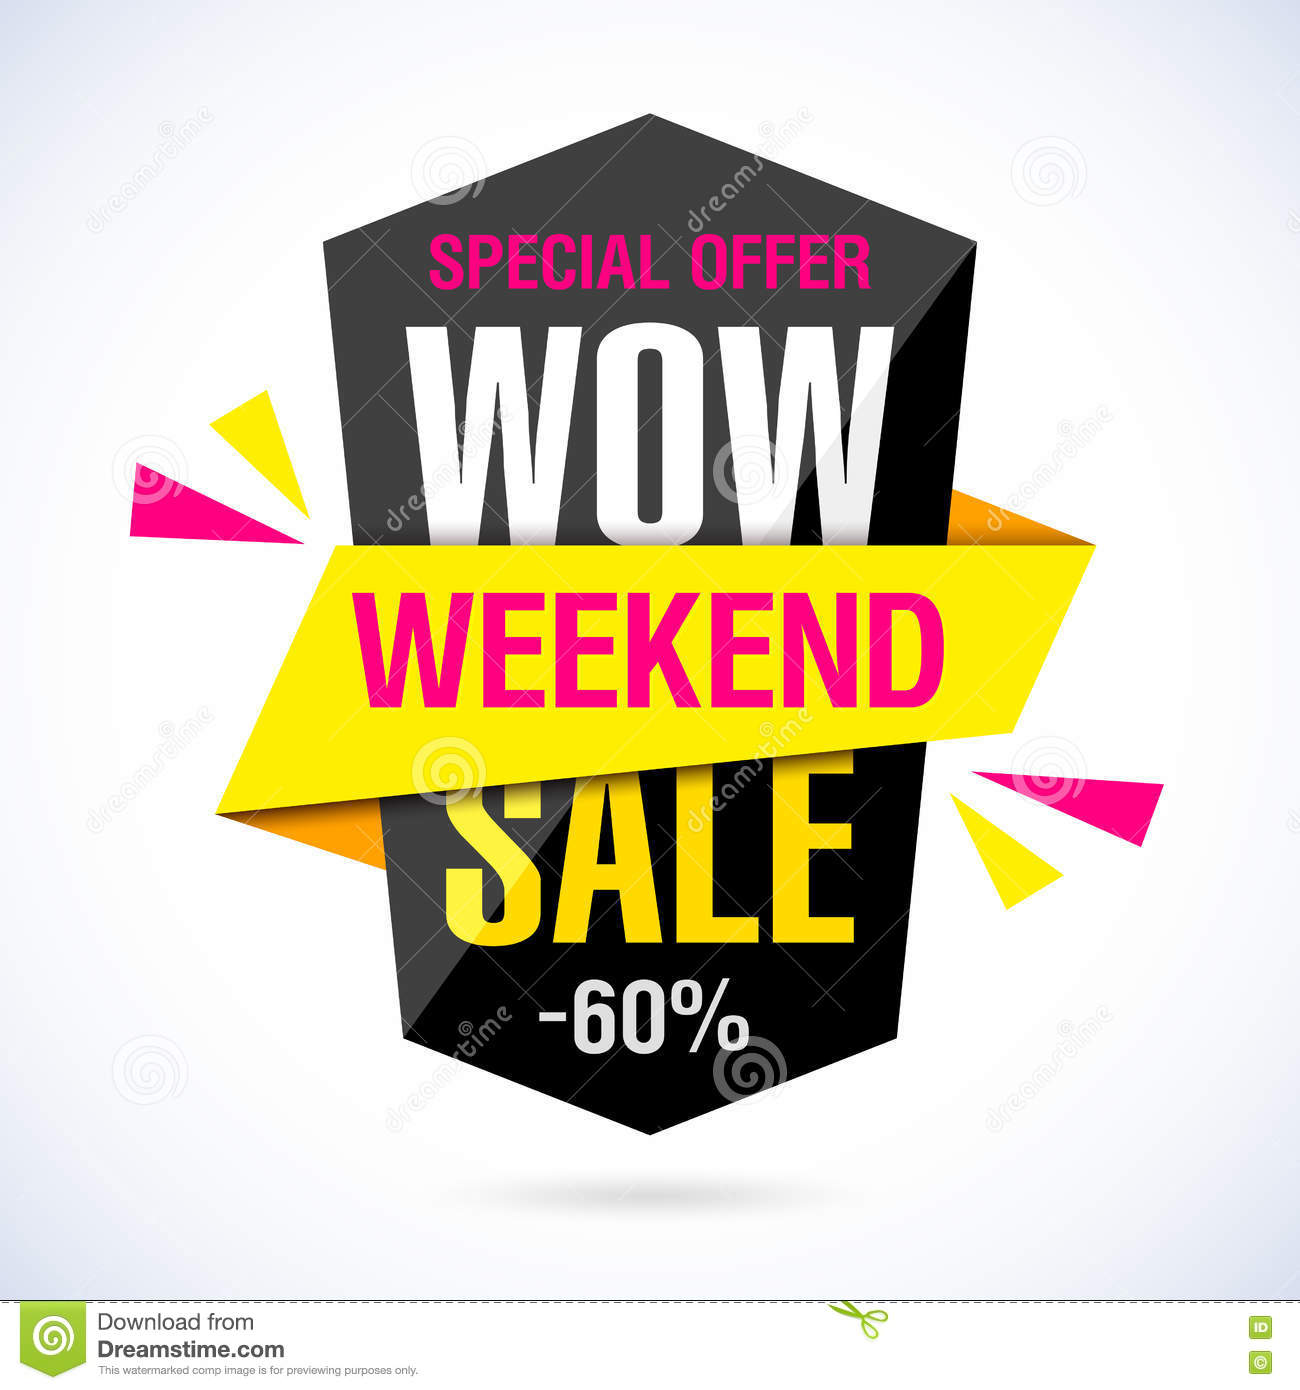 Ti9 Weekend Sale: Wow Weekend Sale Banner Stock Vector. Illustration Of Sign